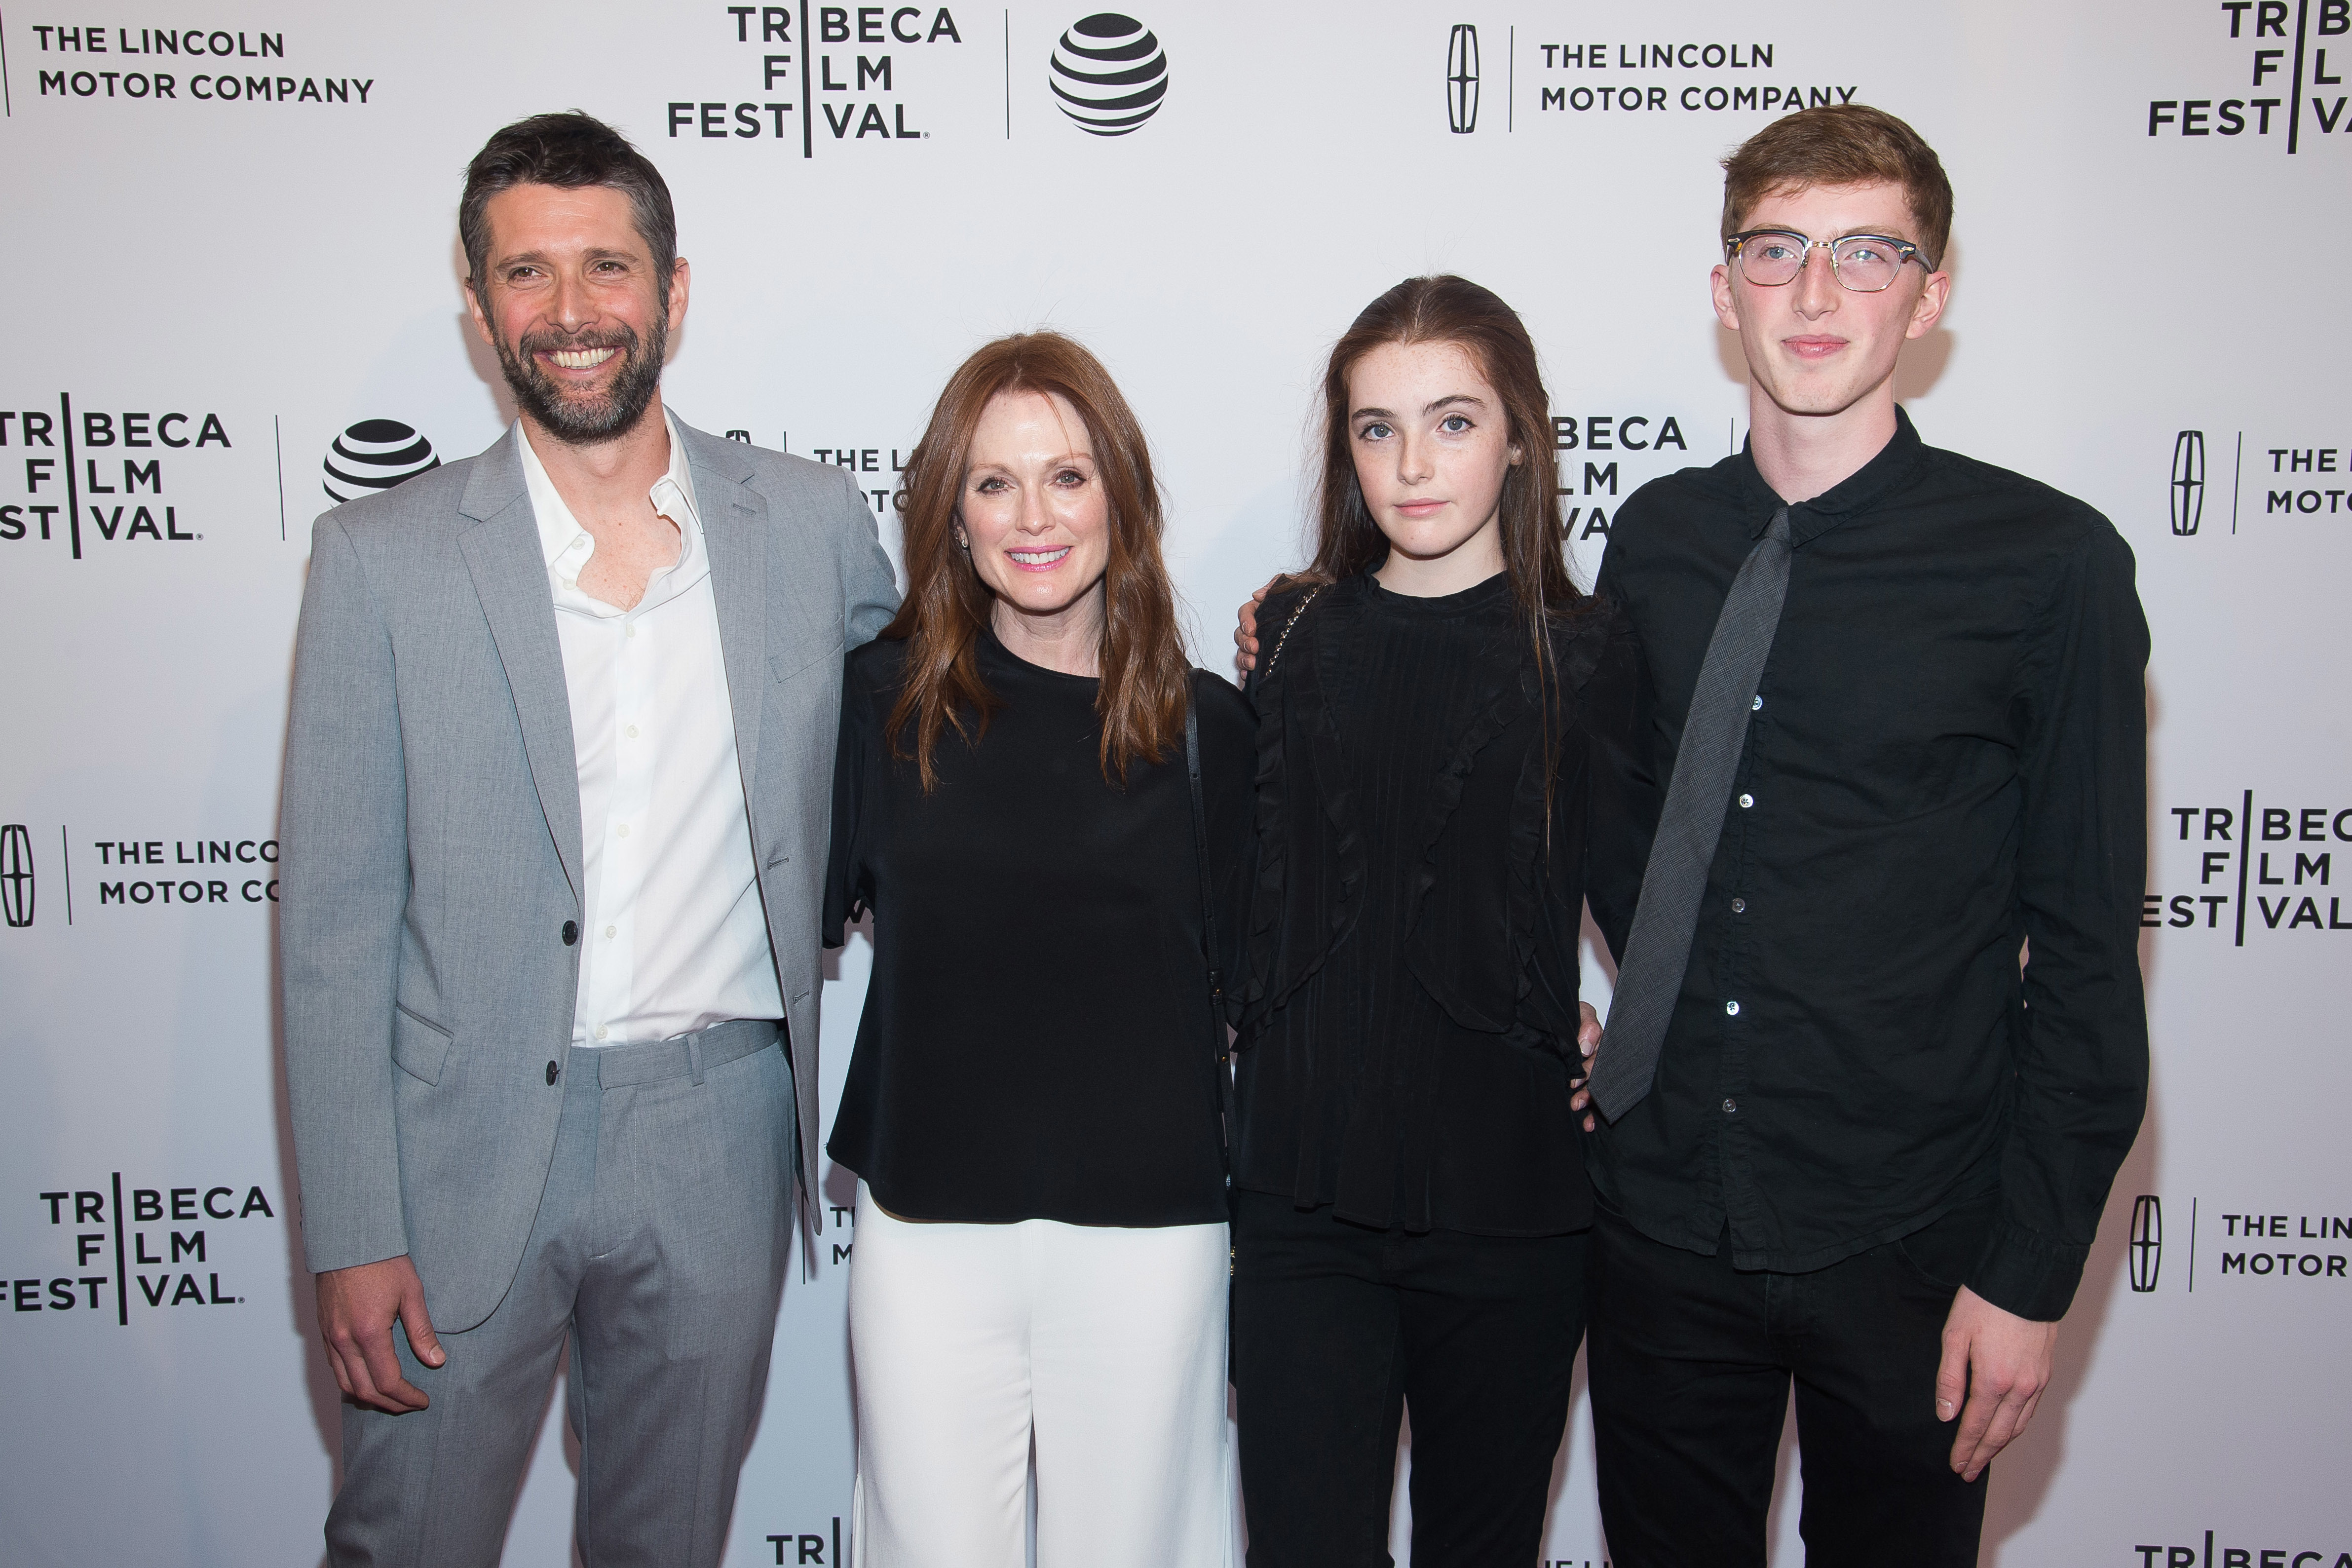 Julianne Moore steps out with her lookalike daughter